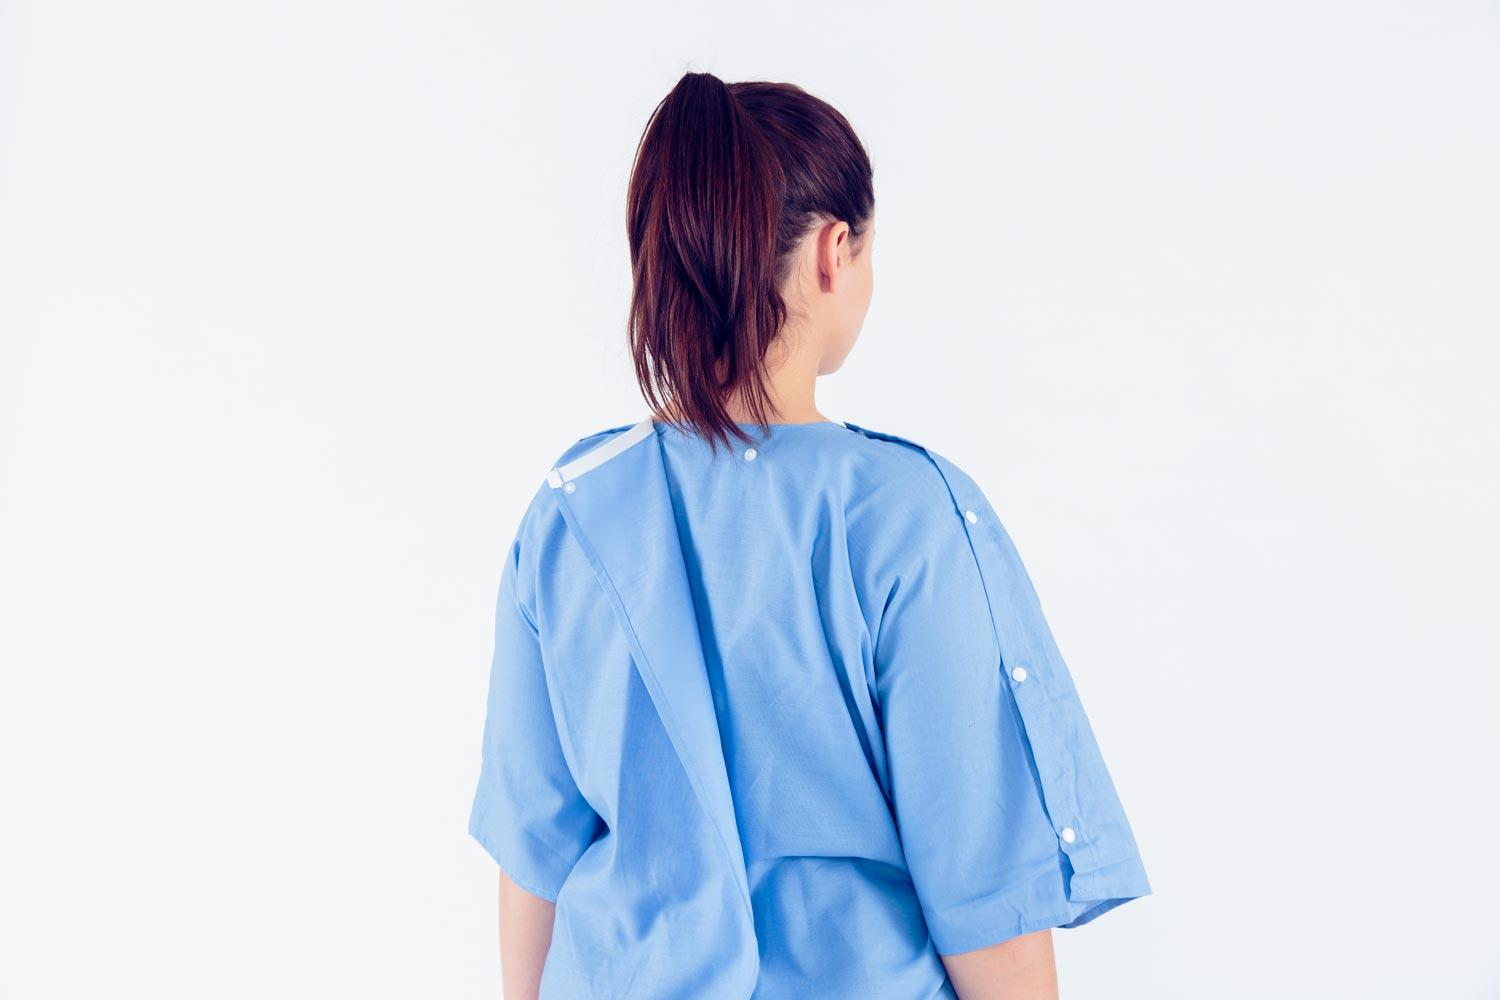 Alumnus Chaitenya Razdan and his Care+Wear company have created a new hospital gown design they believe will provide more privacy and comfort than traditional gowns that tie in the back.